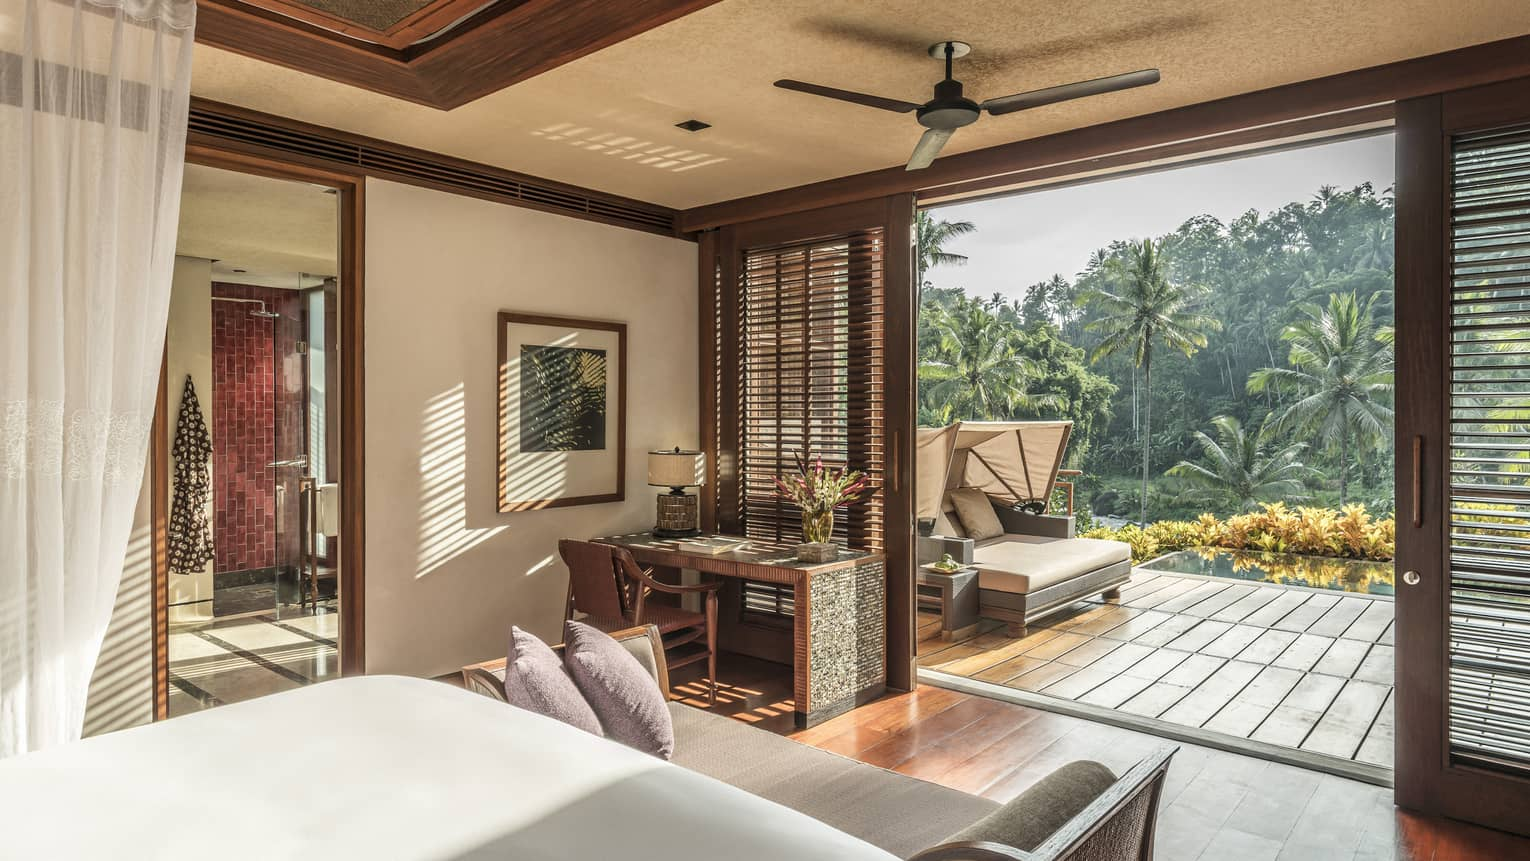 A scenic view from a spacious room overlooking a forest and river in Bali